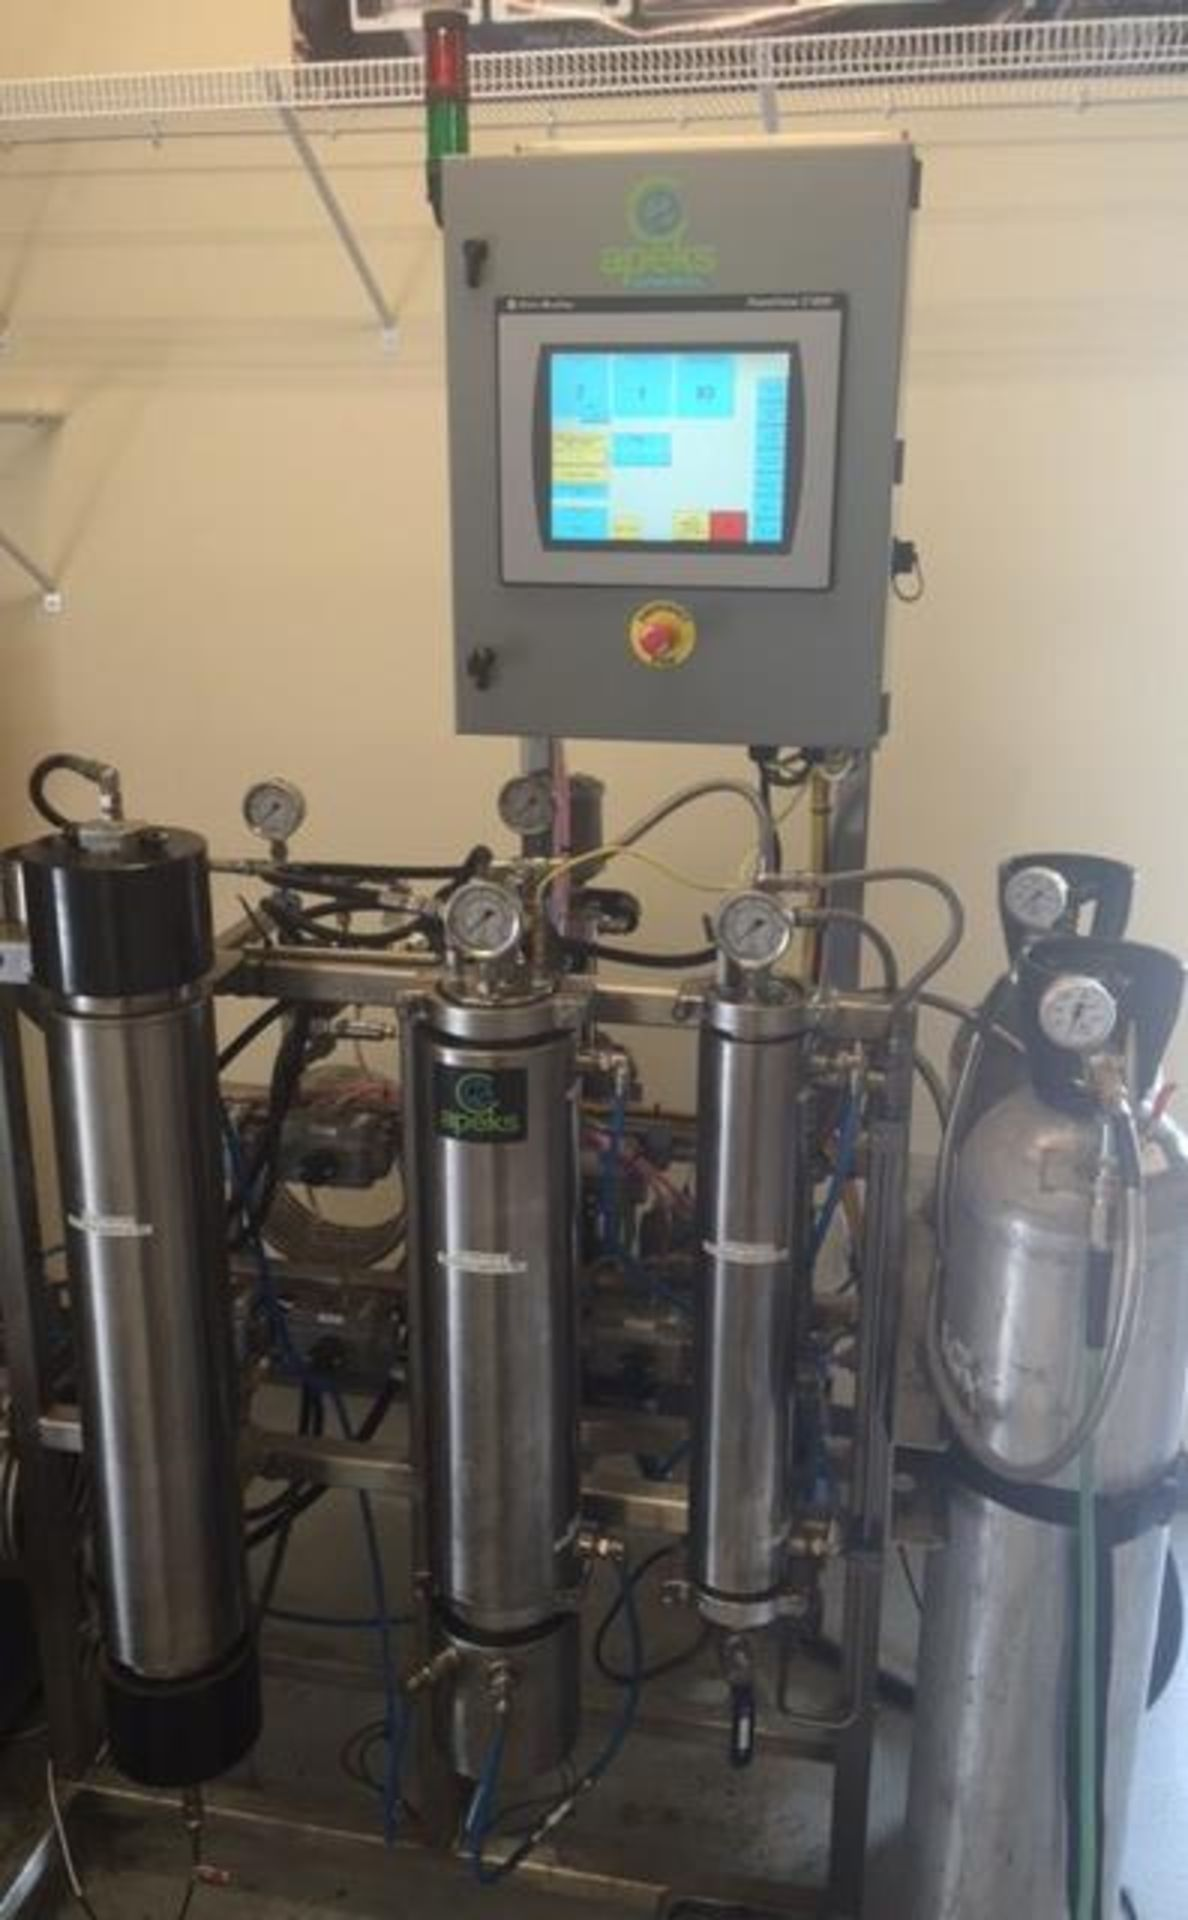 Used-Apeks 2x 5L 5000 PSI 5L Extraction System. Holds up to 3 lbs of dry/ground material - Image 3 of 6